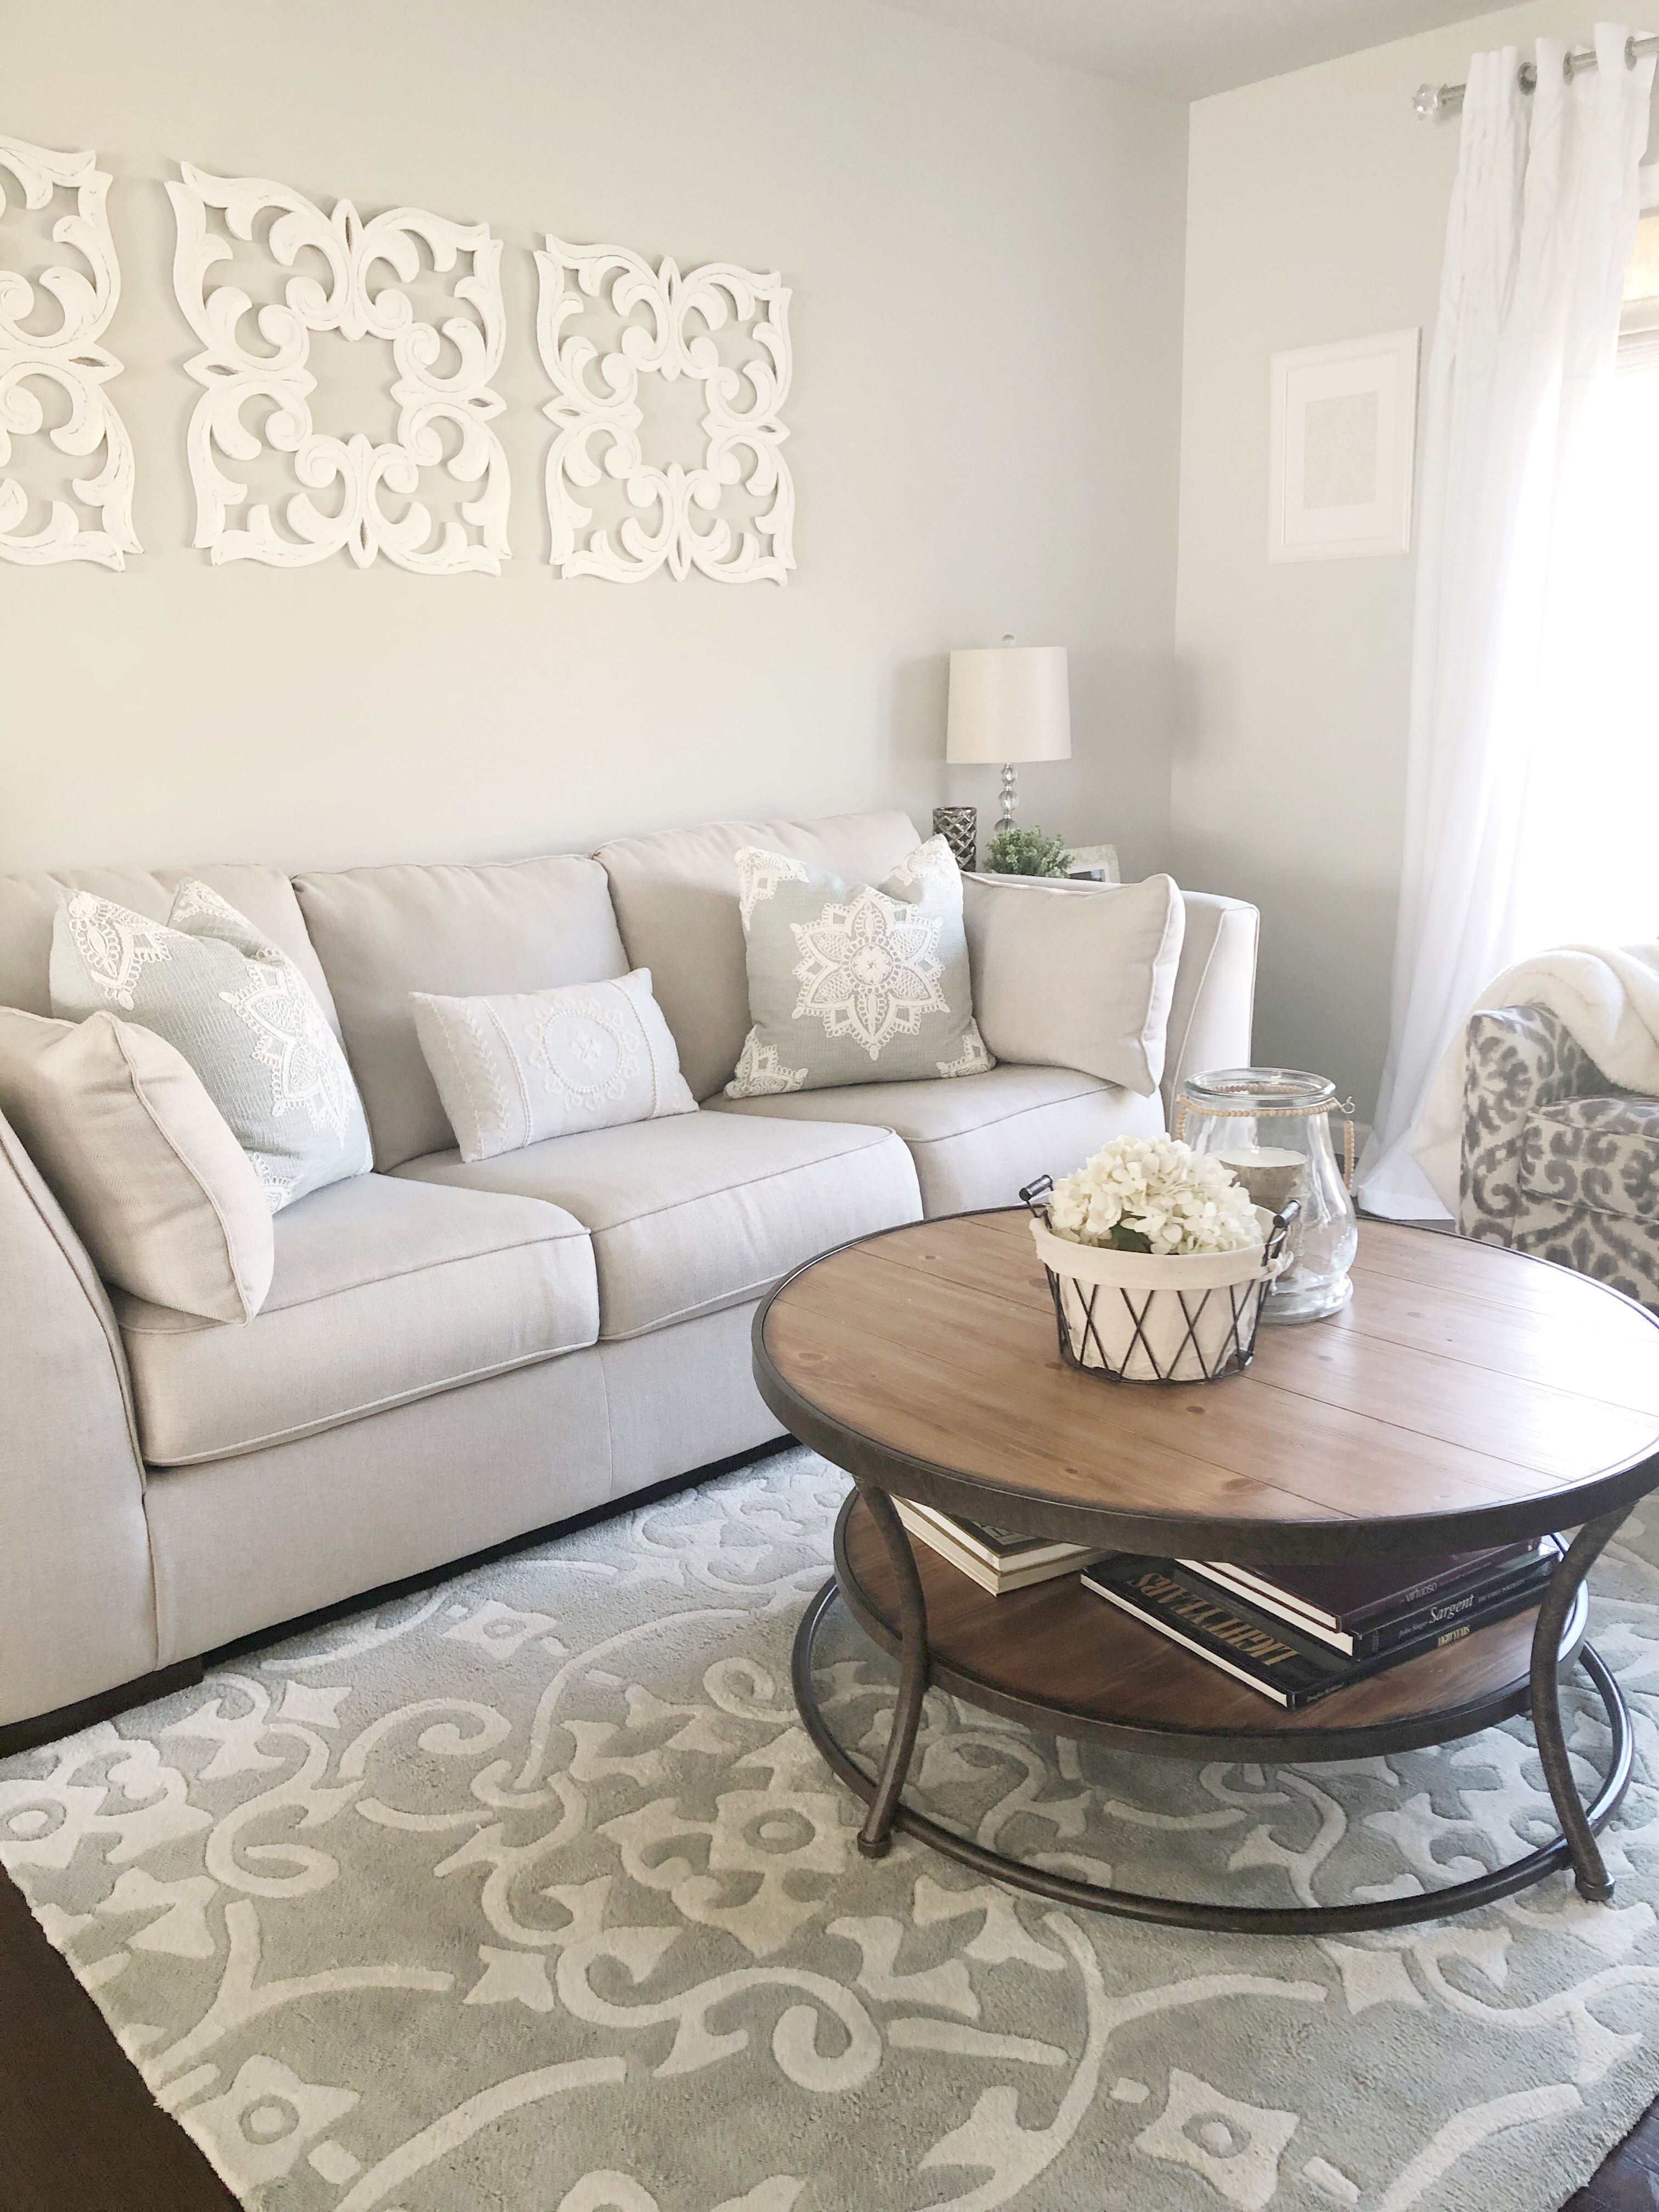 Neutral Transitional Living Room Transitional Living Rooms Living Room Ashley Furniture #neutral #transitional #living #room